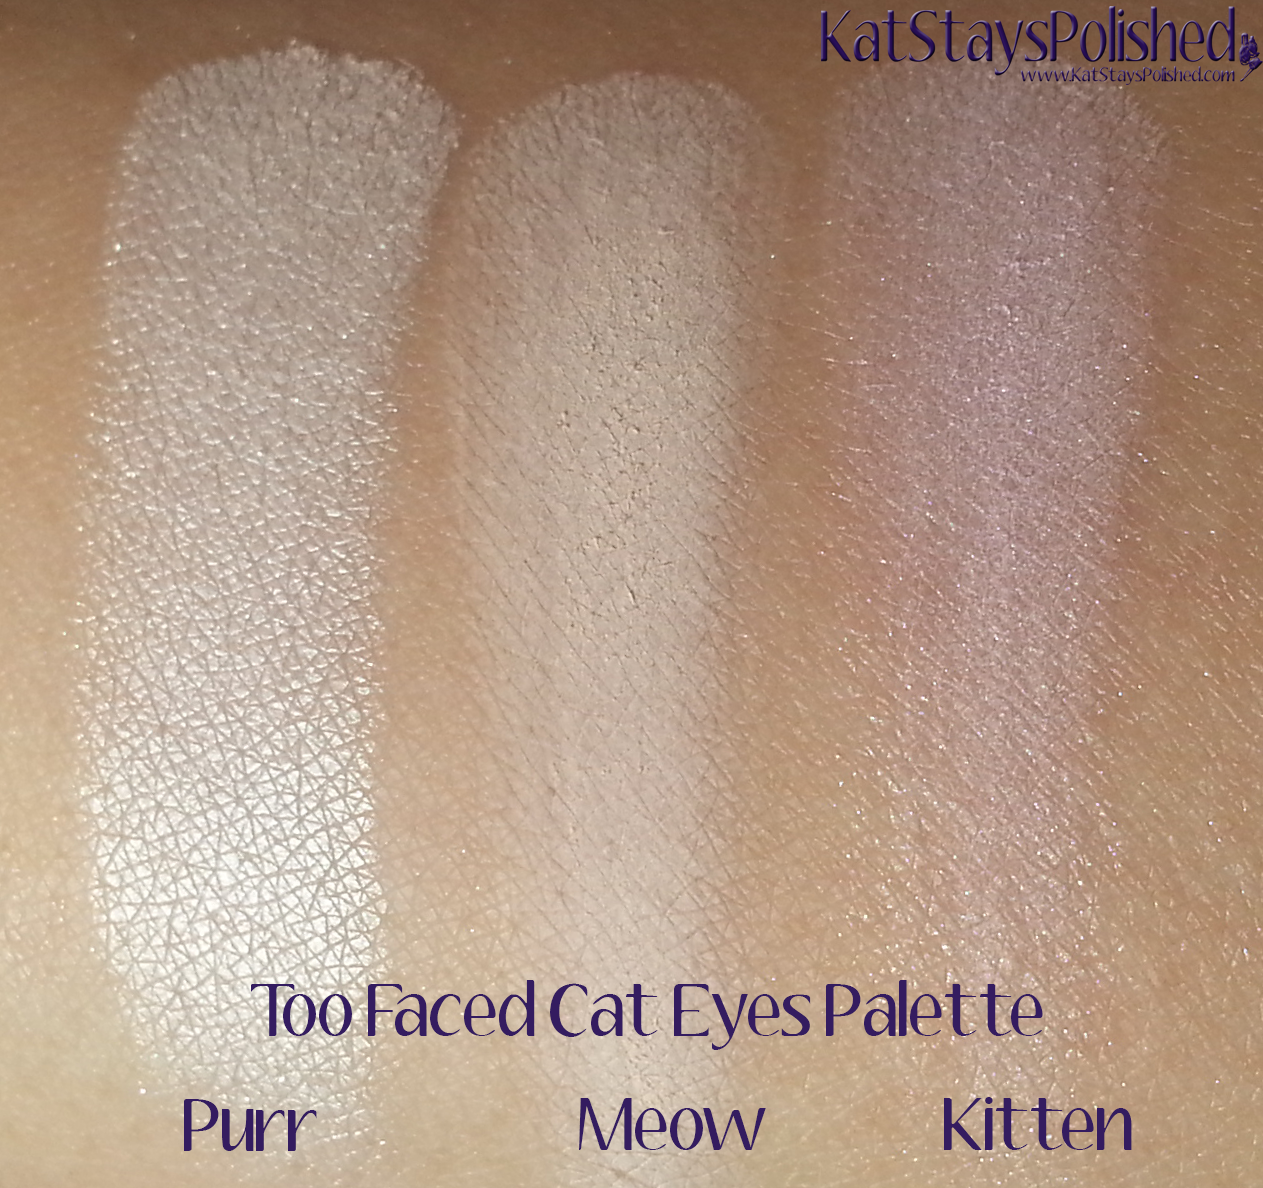 Too Faced Cat Eyes Palette - Purr, Meow, Kitten | Kat Stays Polished